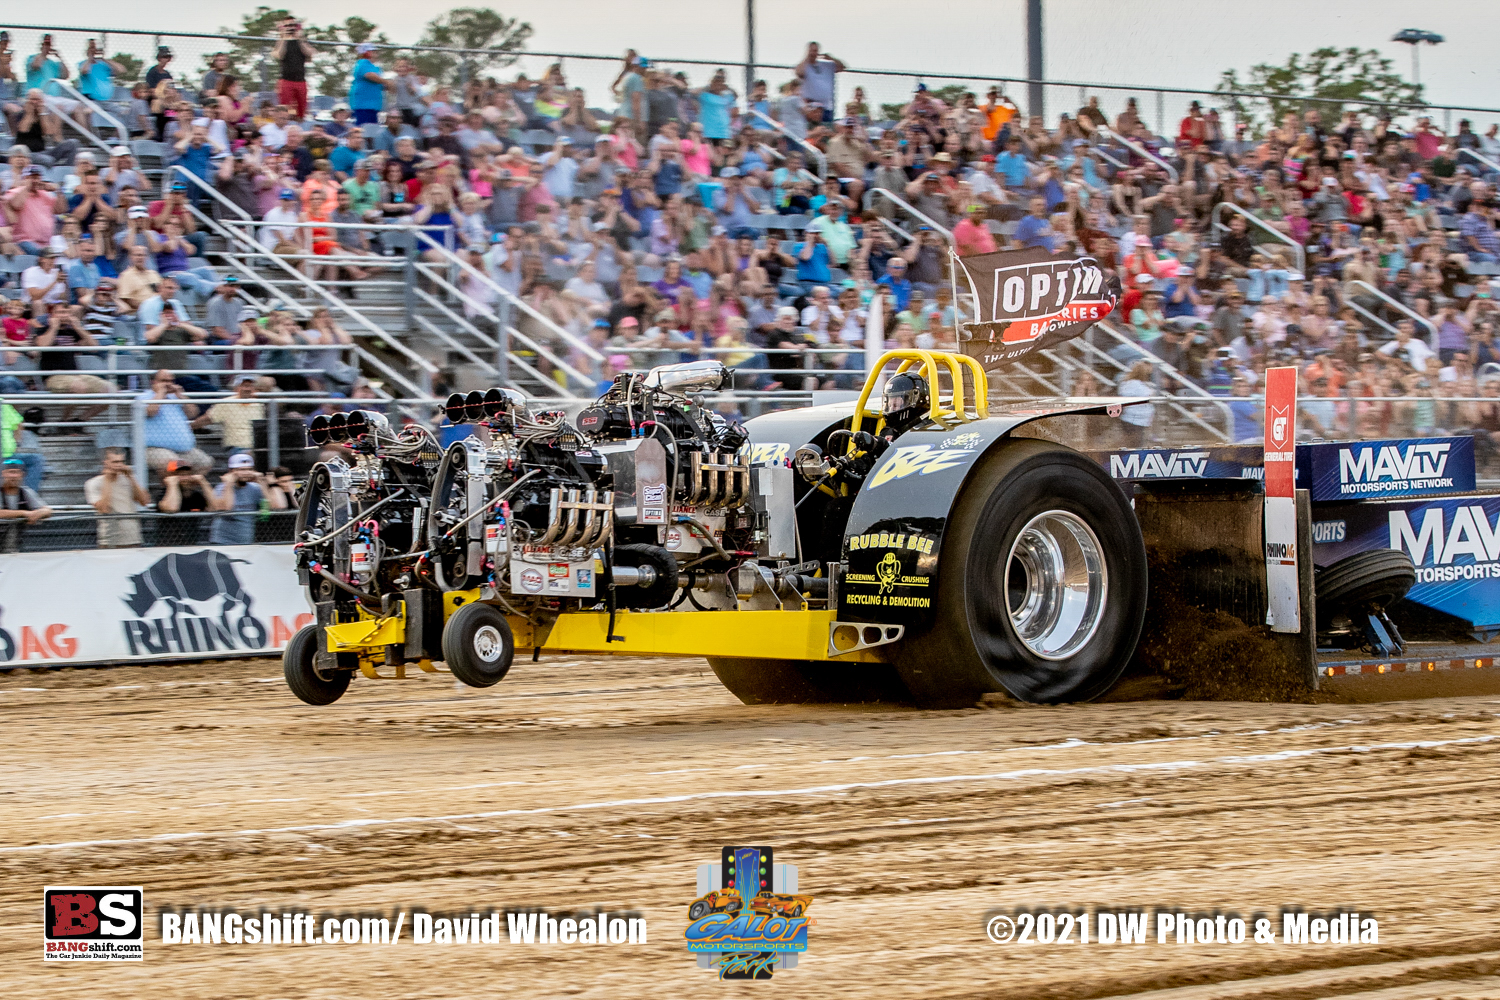 Lucas Oil Pro Pulling League Action Photos: Horsepower, Torque, and Competiton At GALOT Motorsports Park